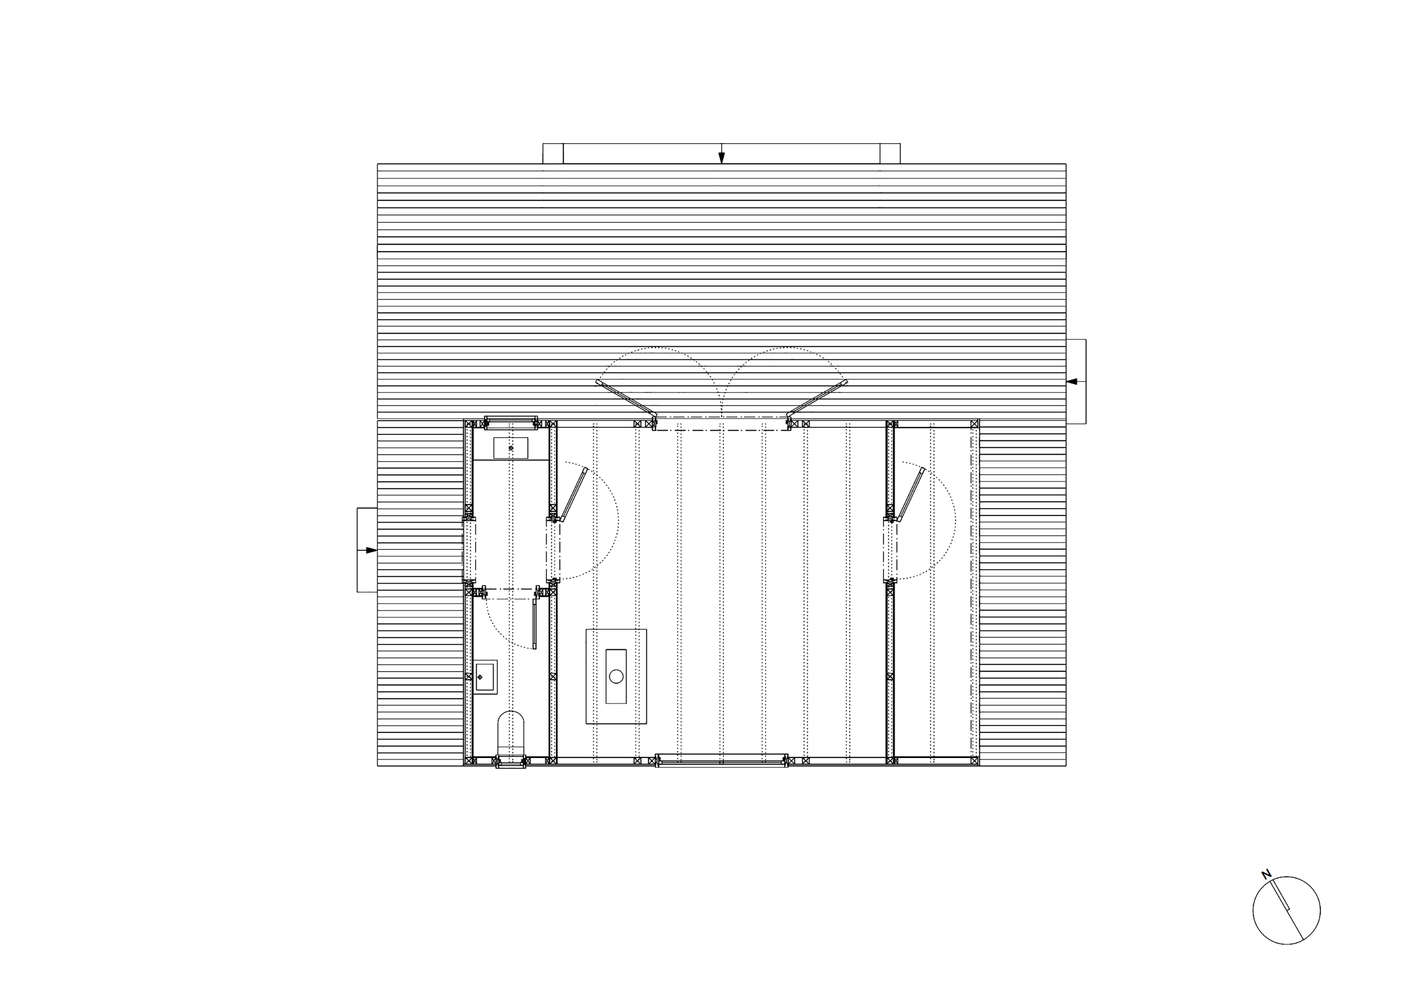 Woodland cabin in Belgium floor plan, designed and built by London architecture firm De Rosee Sa Architects | Remodelista